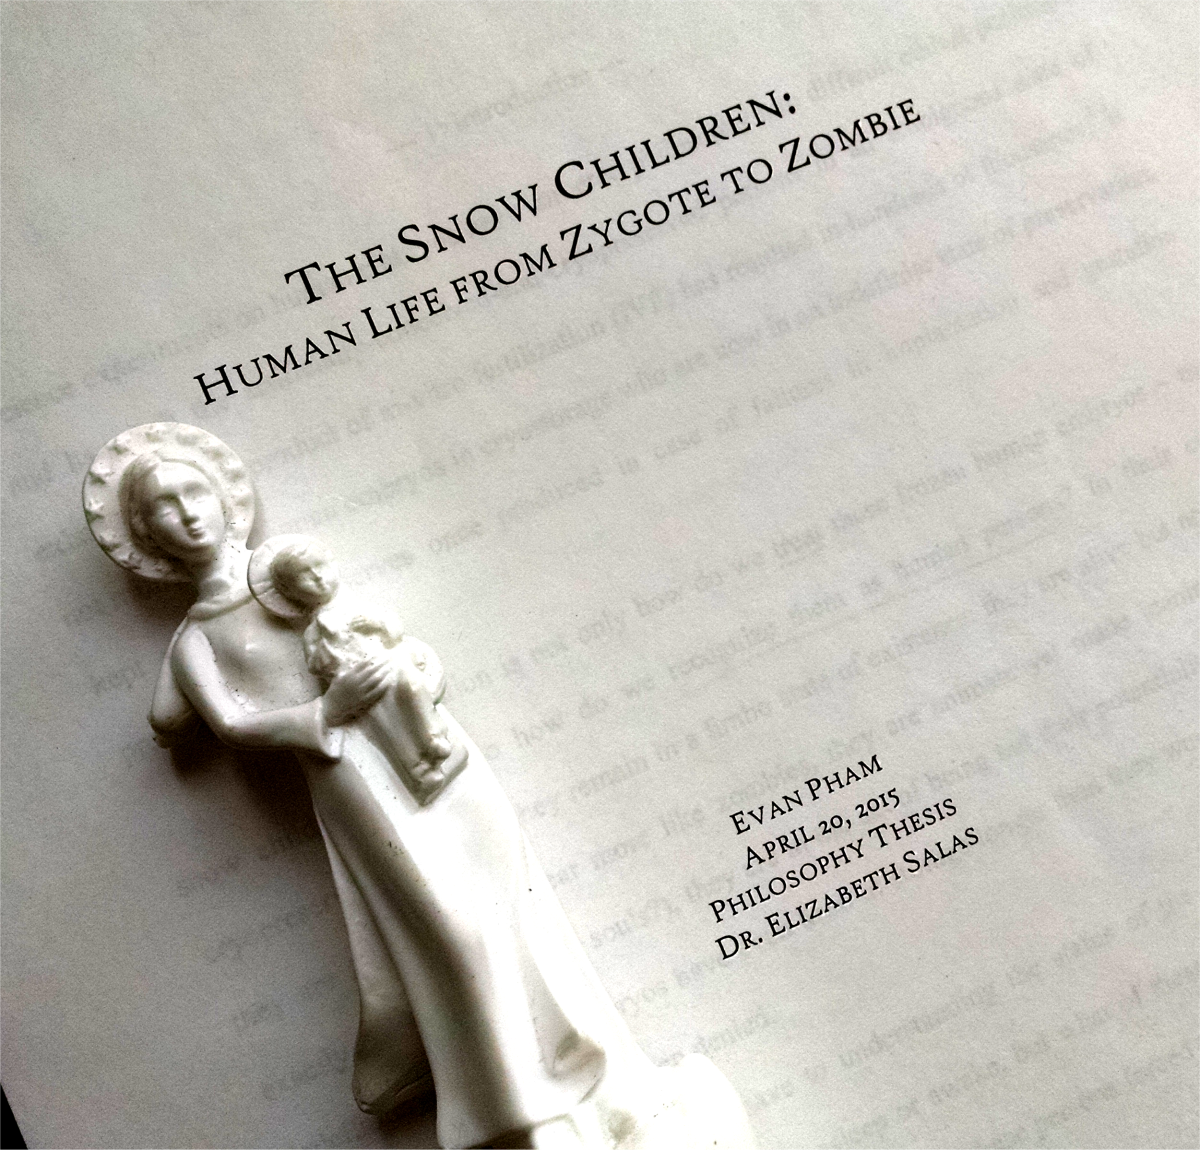 The Snow Children: Human Life from Zygote to Zombie